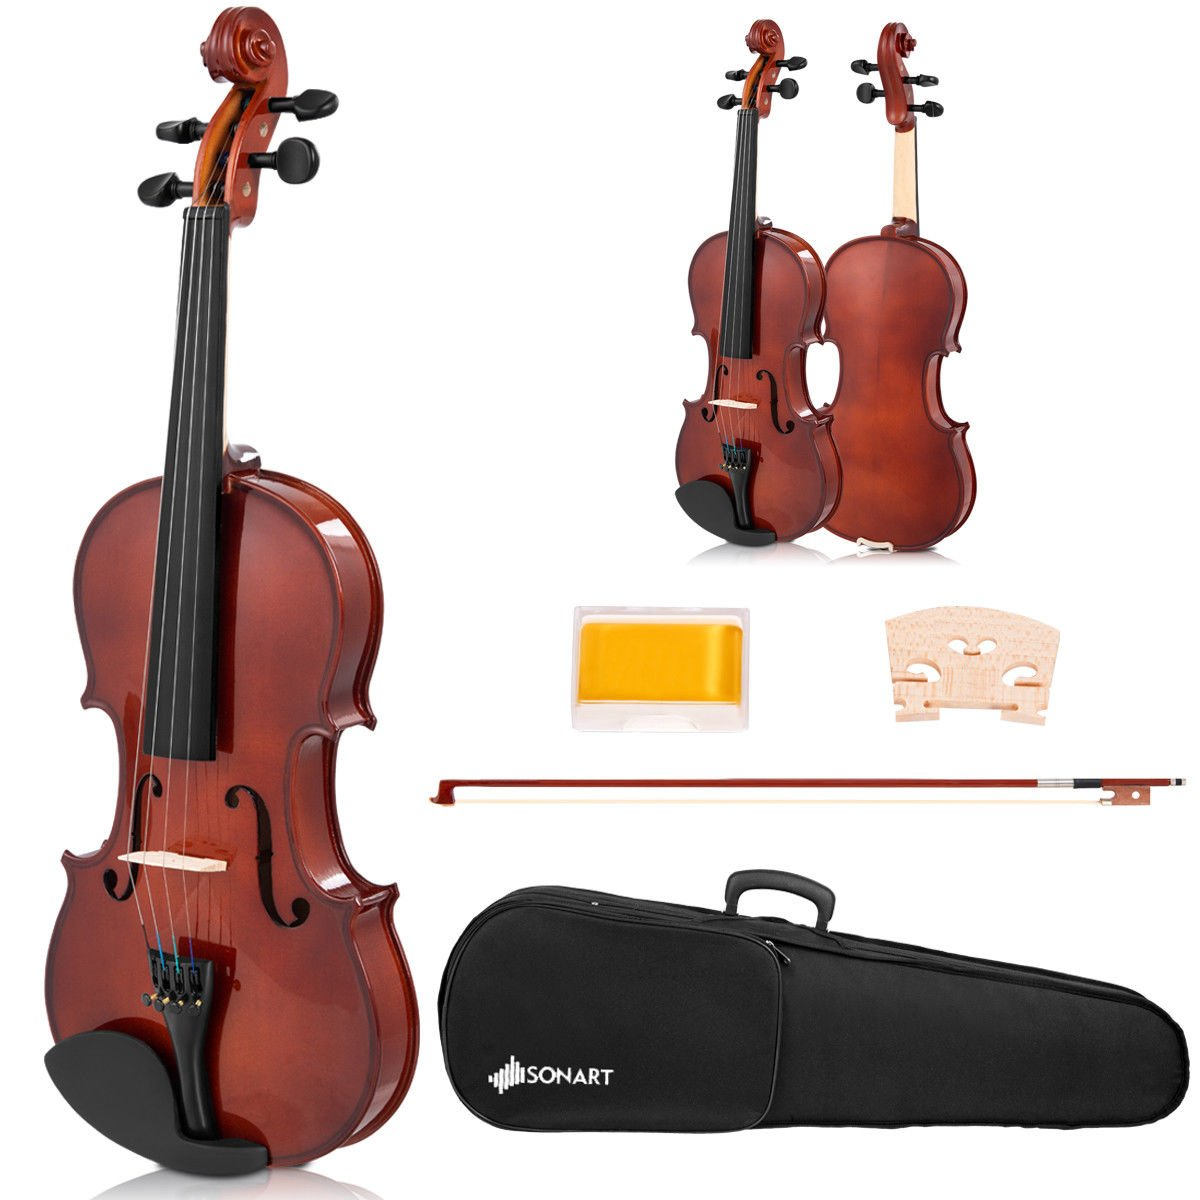 Sonart Full Size 4/4 Solid Wood Violin, Acoustic Starter Kit with Hard Case, Rosin, Bridge, Bow, Extra Strings, Violin Outfit Set for Beginners Students Costzon